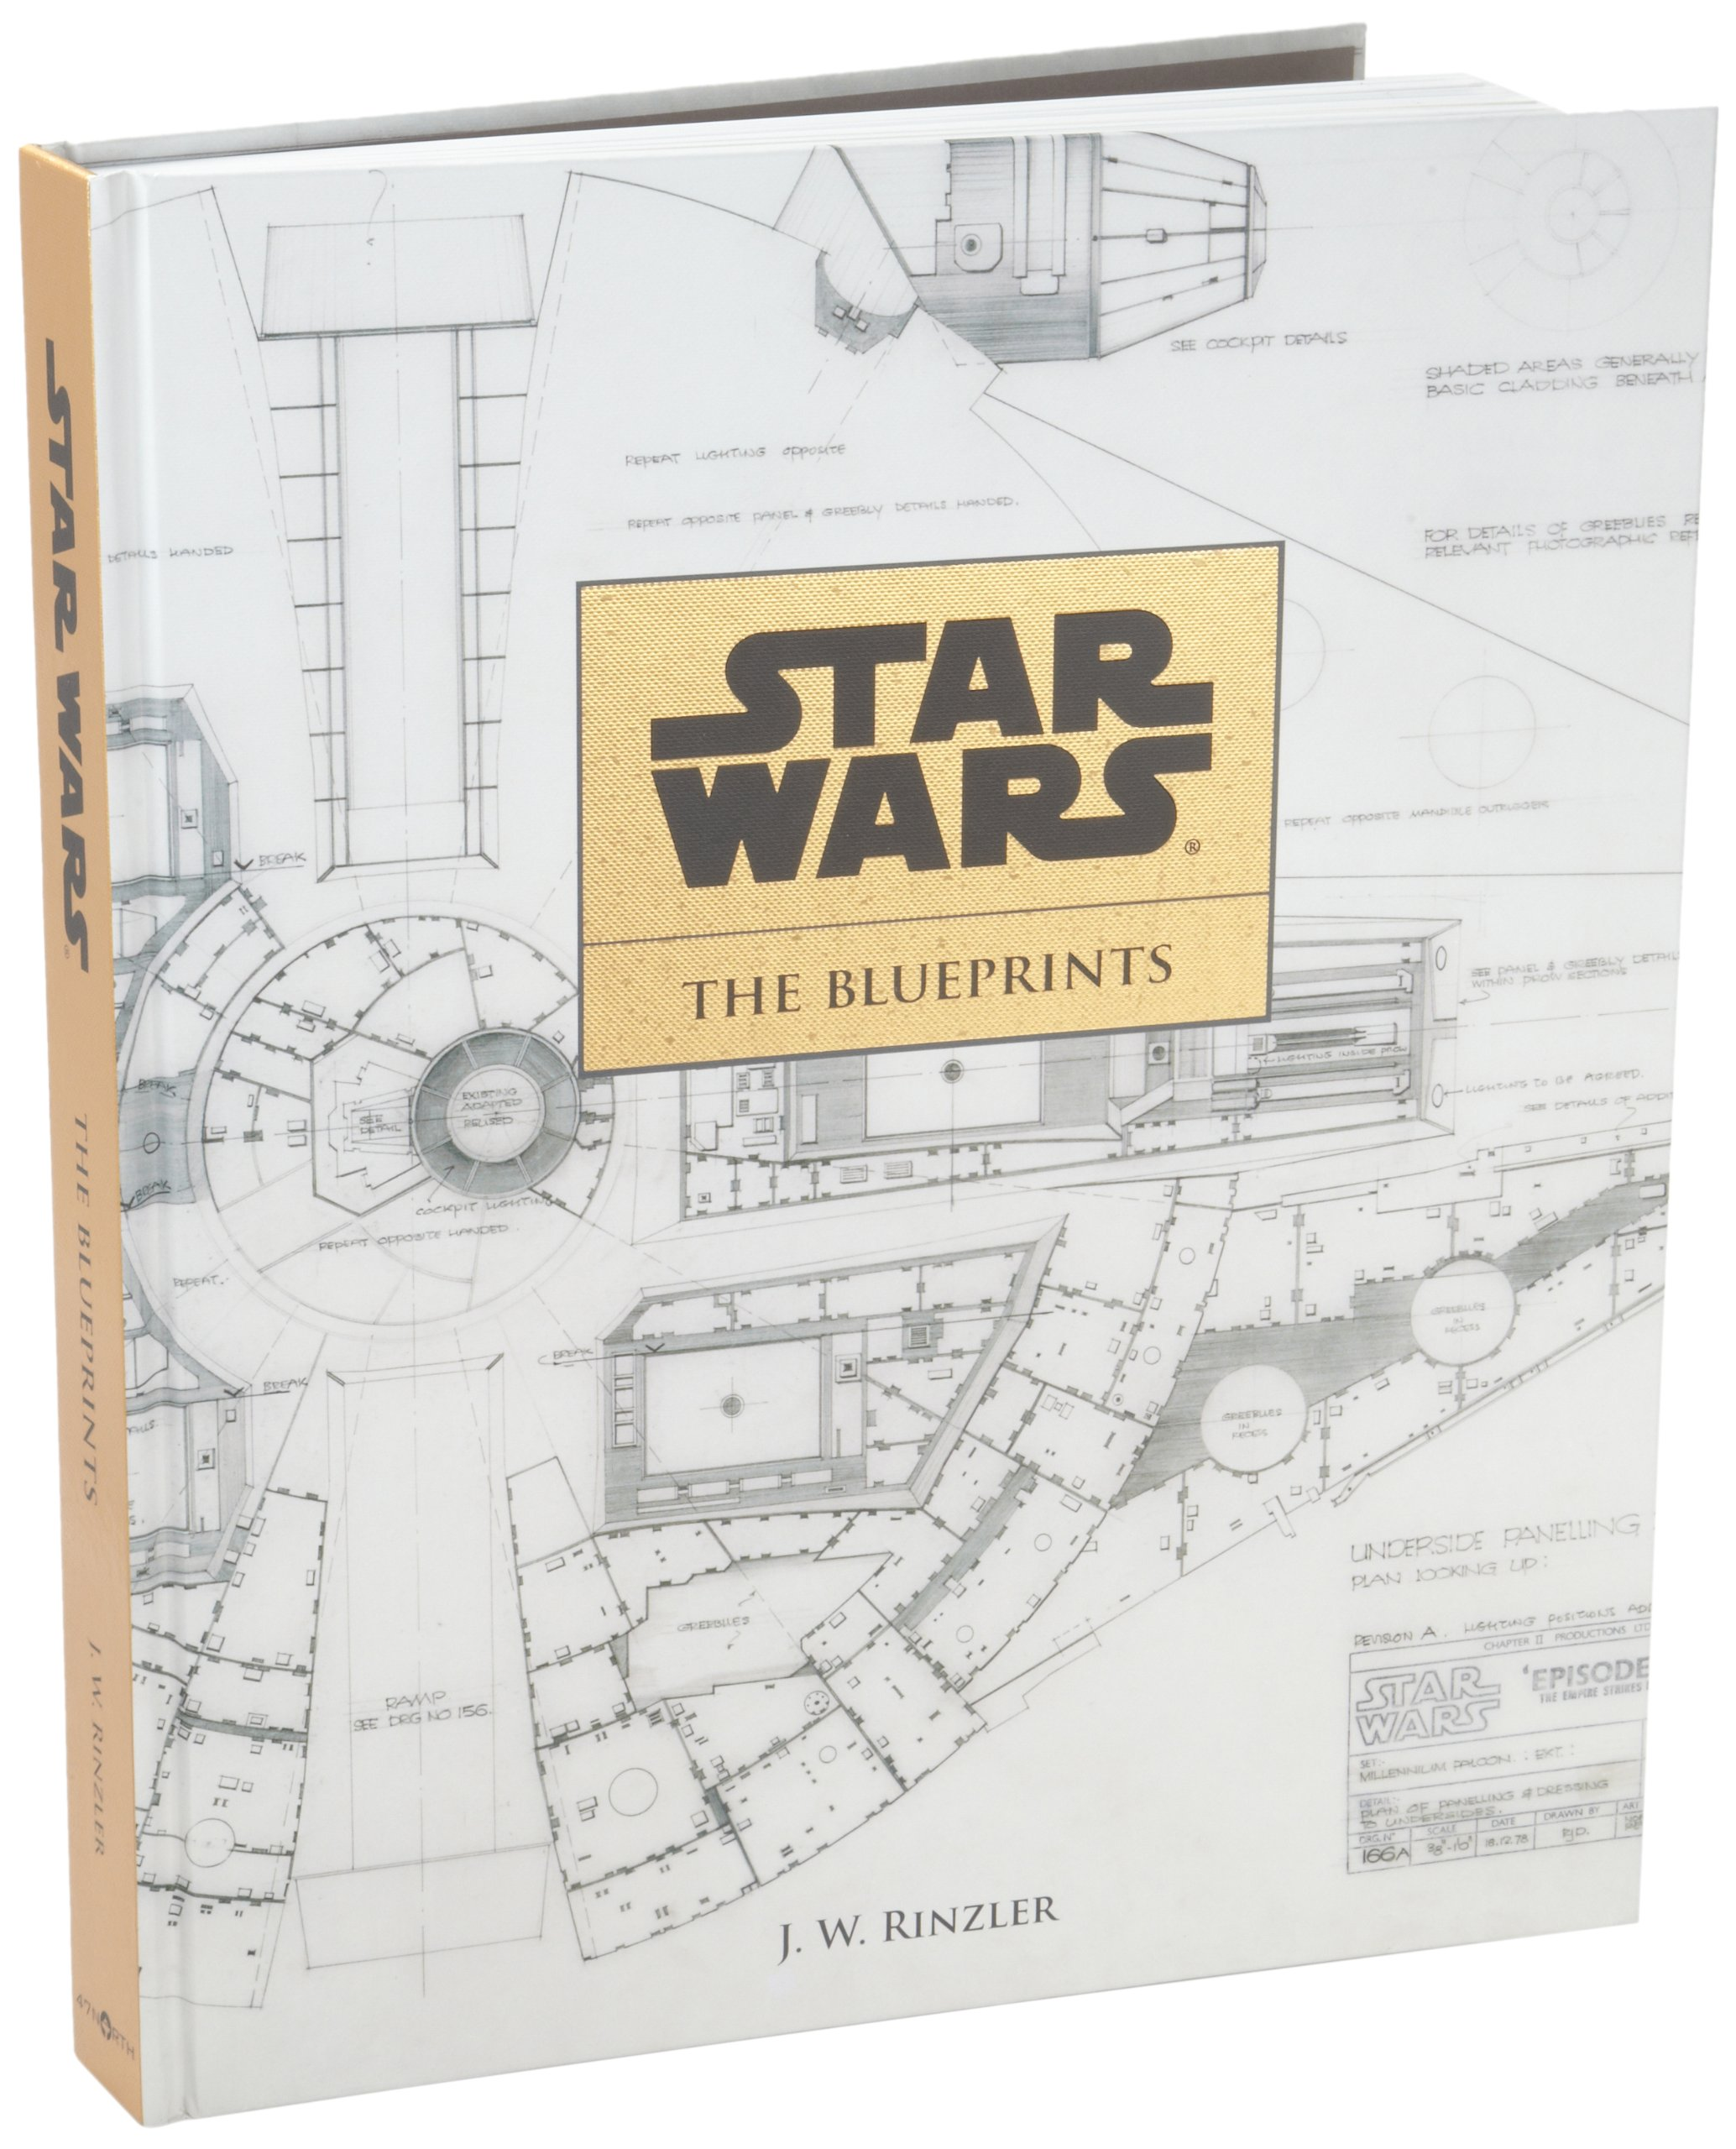 Star wars the blueprints wookieepedia fandom powered by wikia malvernweather Choice Image